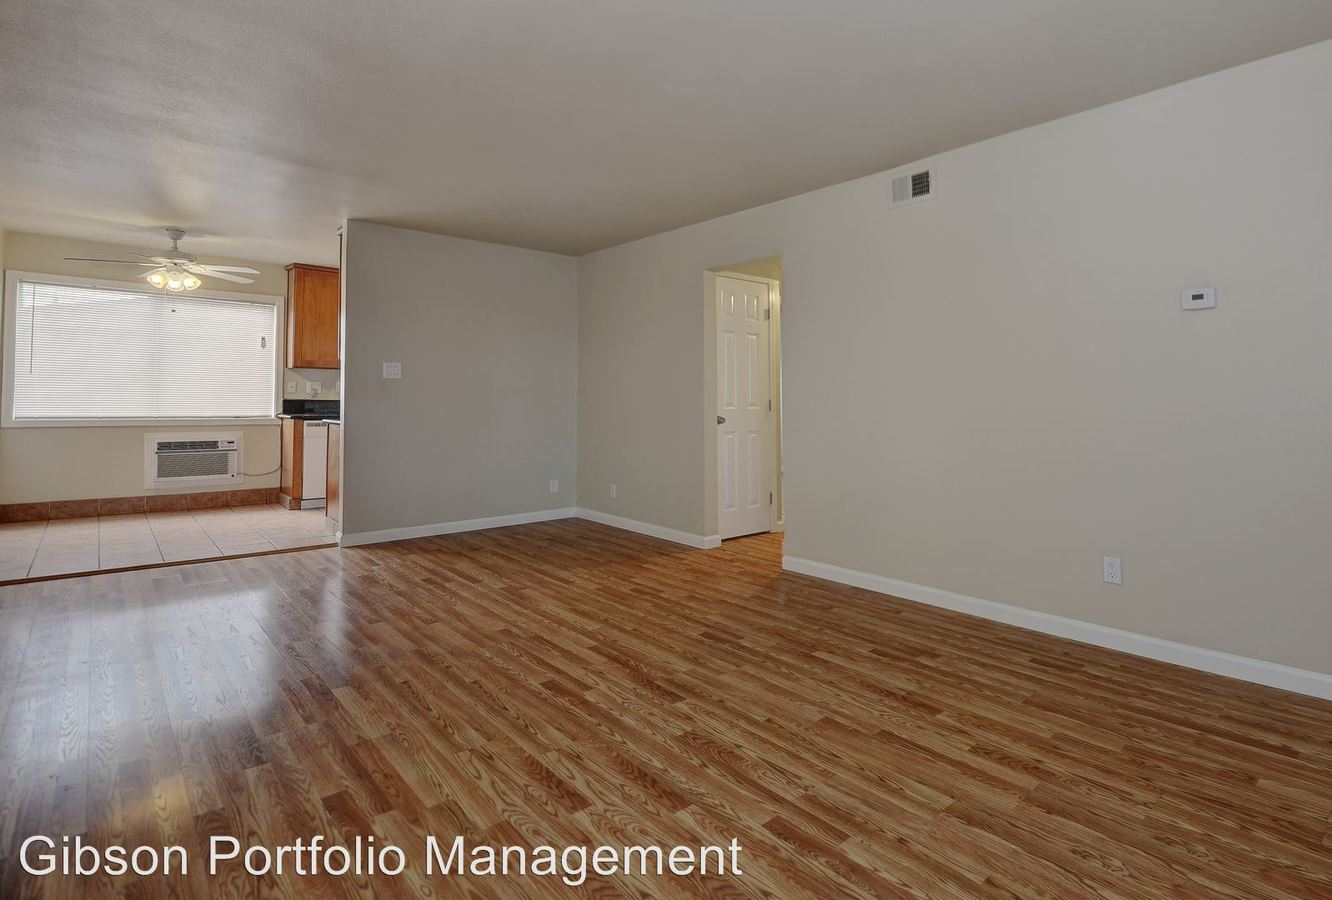 2 Bedrooms 1 Bathroom Apartment for rent at 925 Pomeroy Ave. in Santa Clara, CA